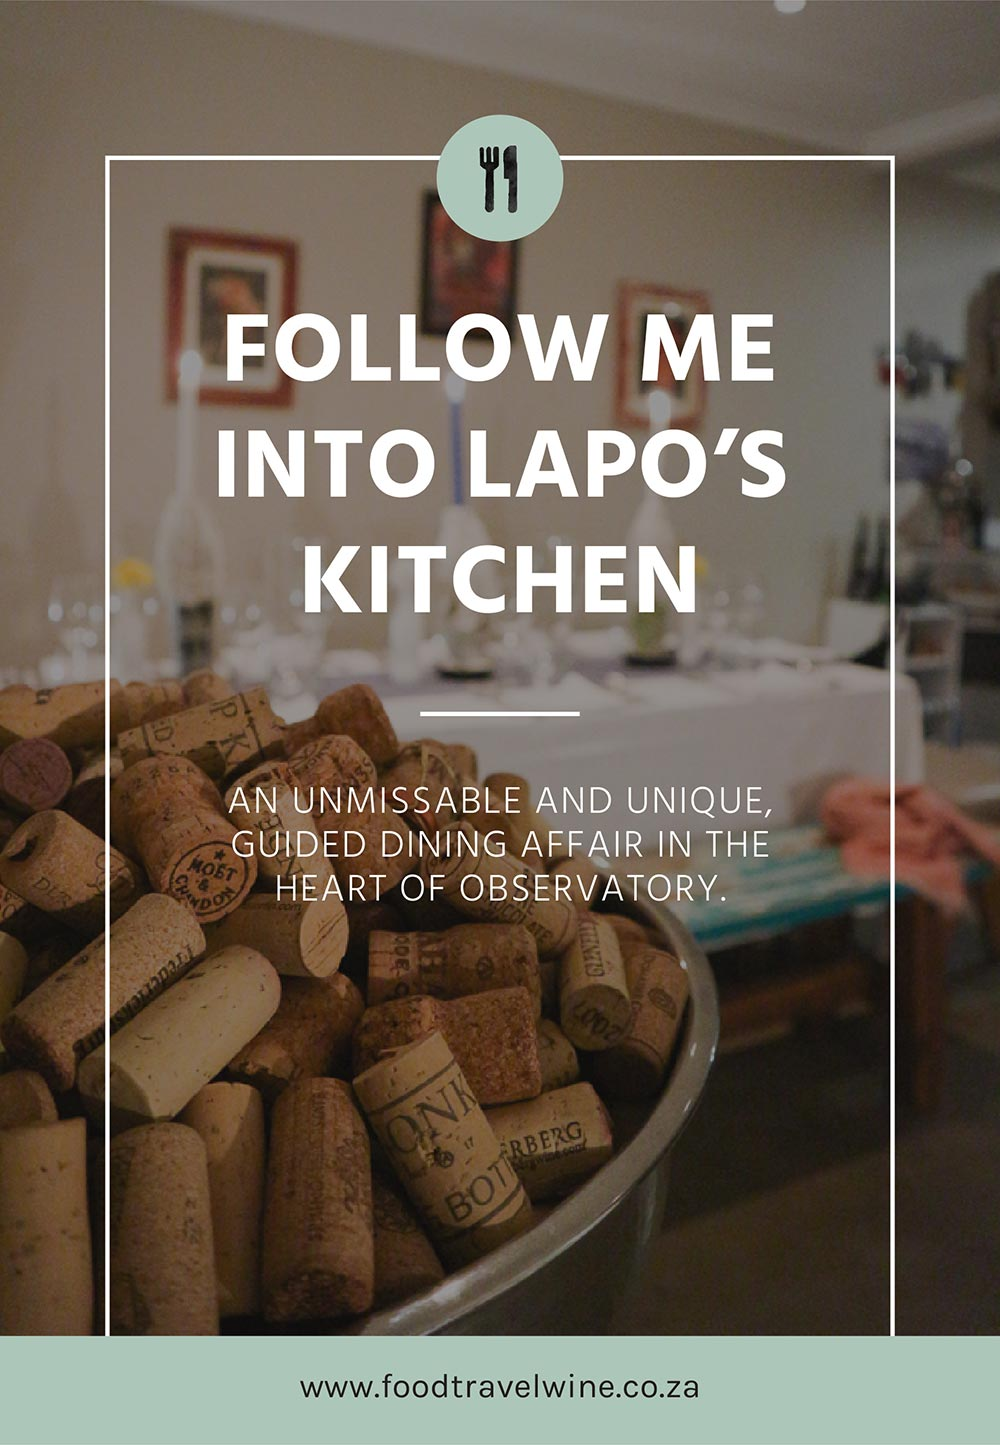 Lapo's Kitchen